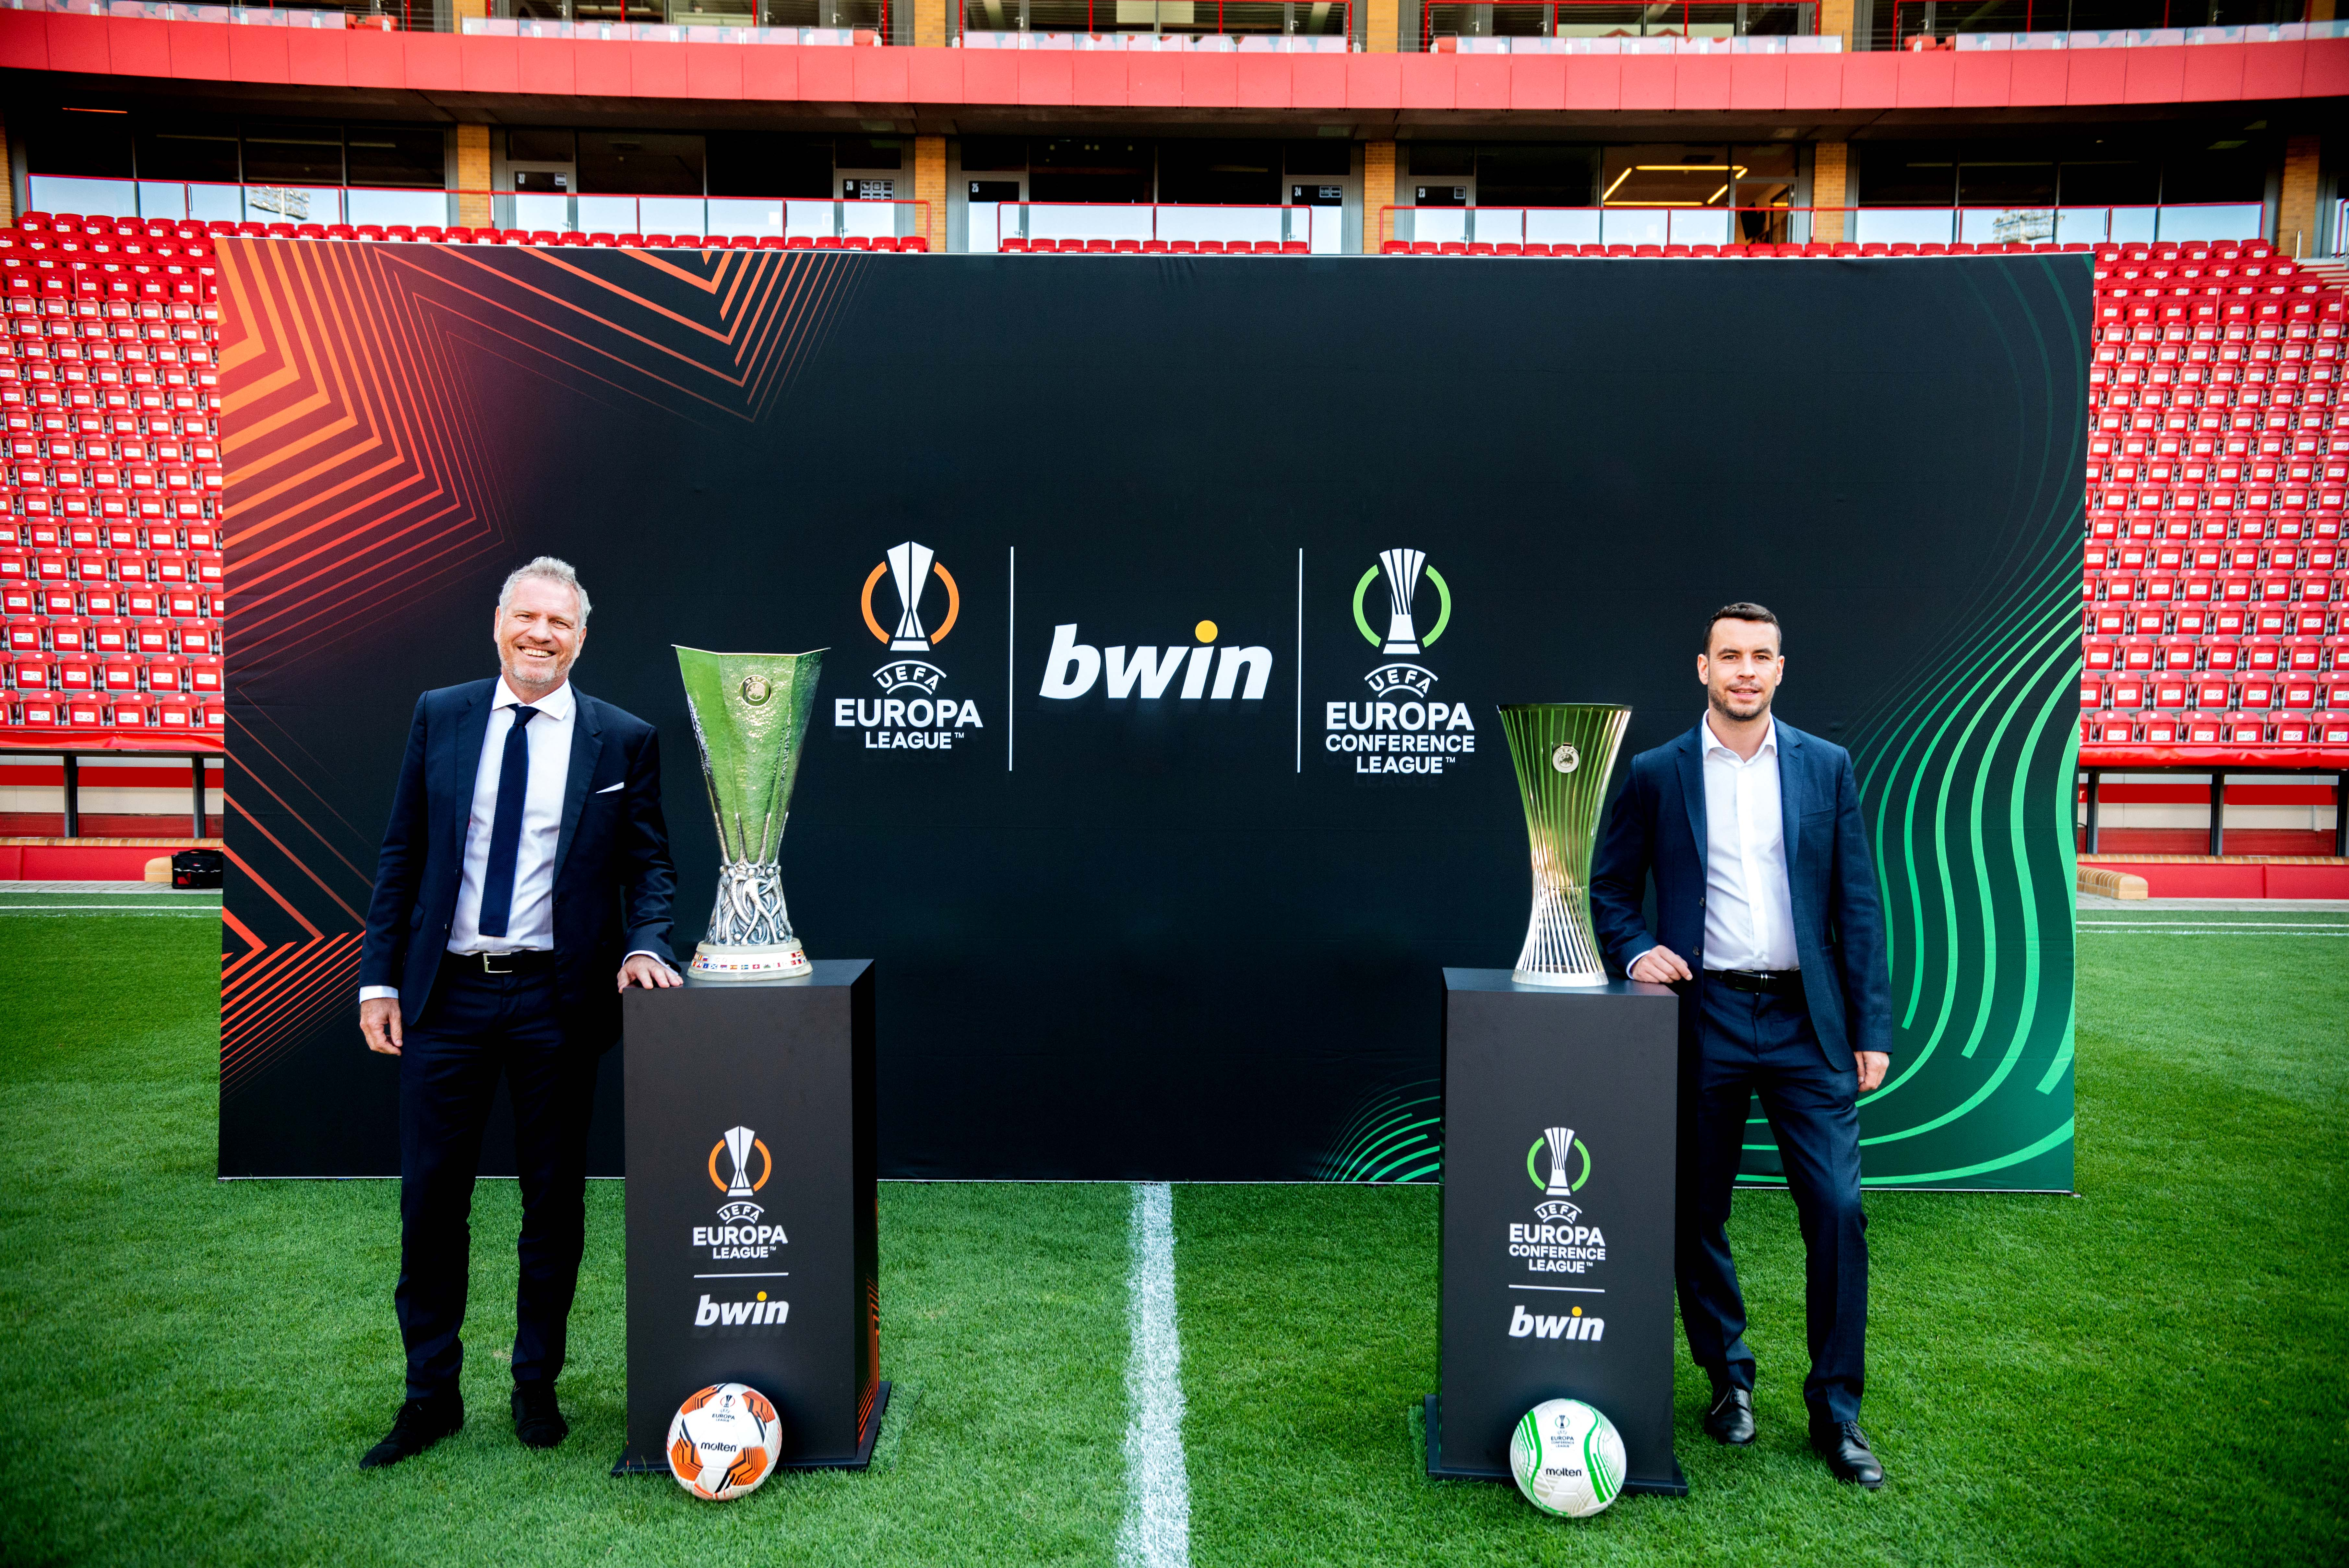 bwin becomes Official Partner of the UEFA Europa League and new UEFA Europa Conference League